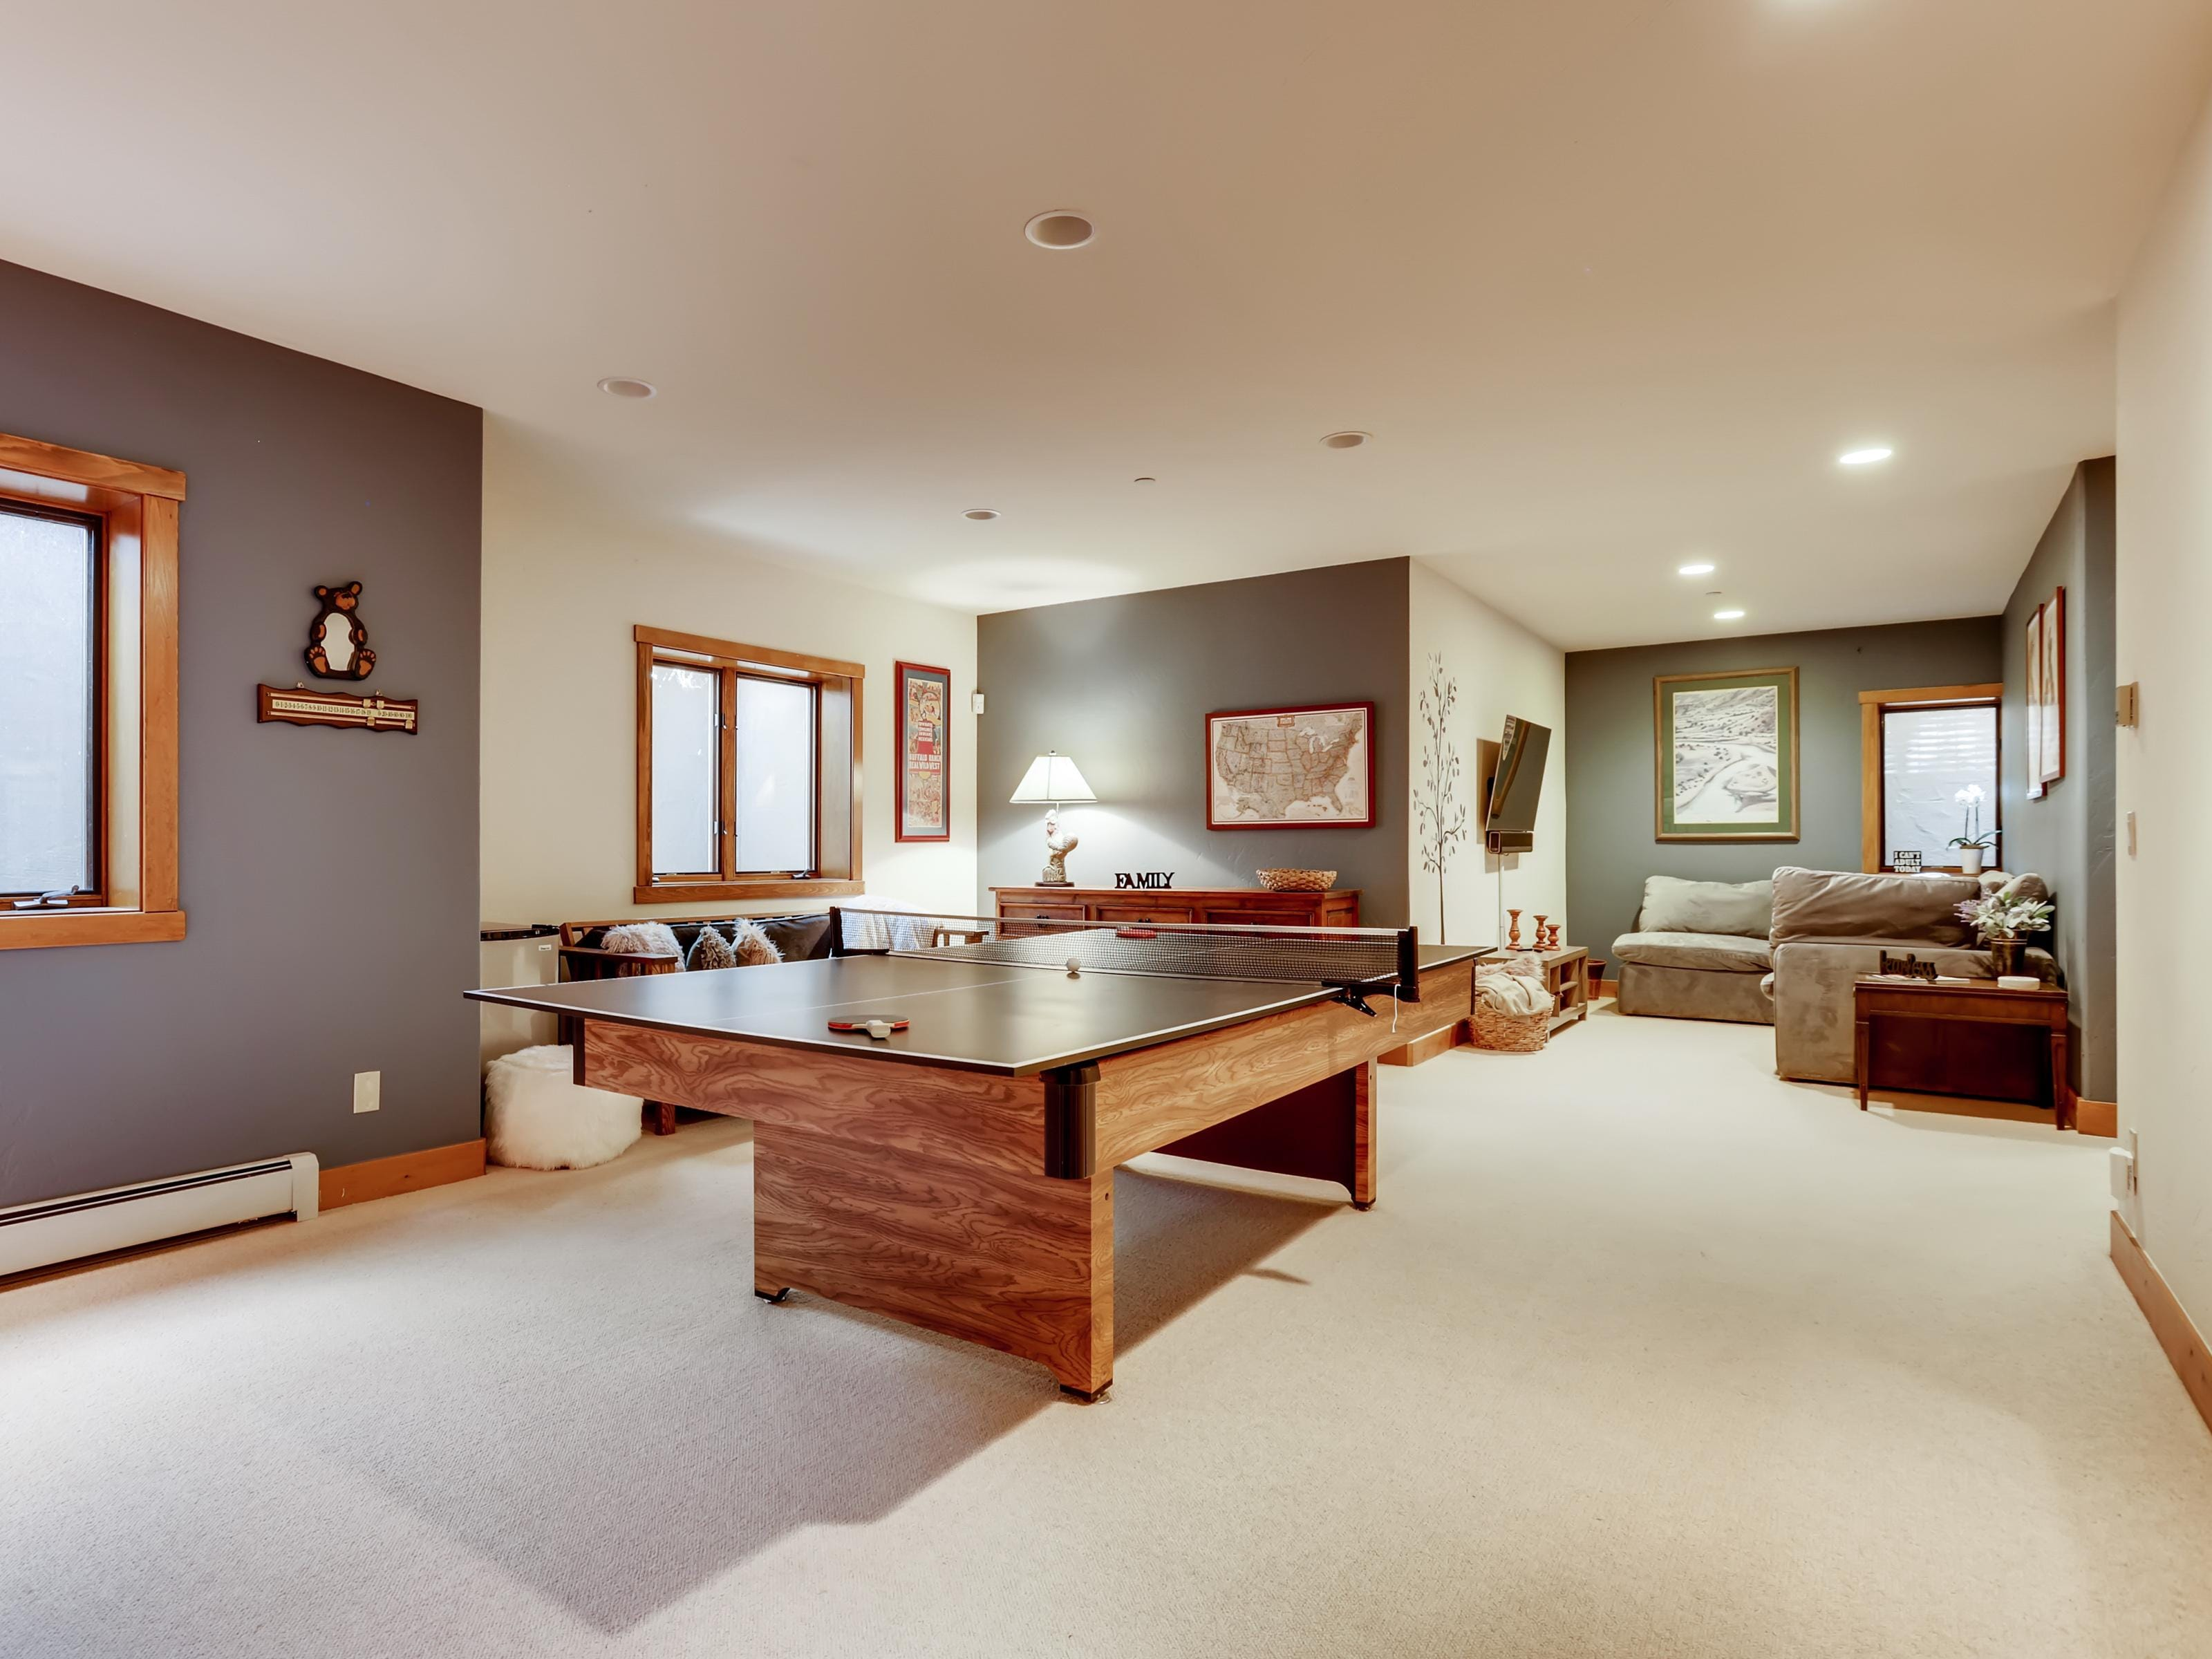 Practice your topspin in the lower-level game room, outfitted with a ping-pong table, futon, and writing desk.